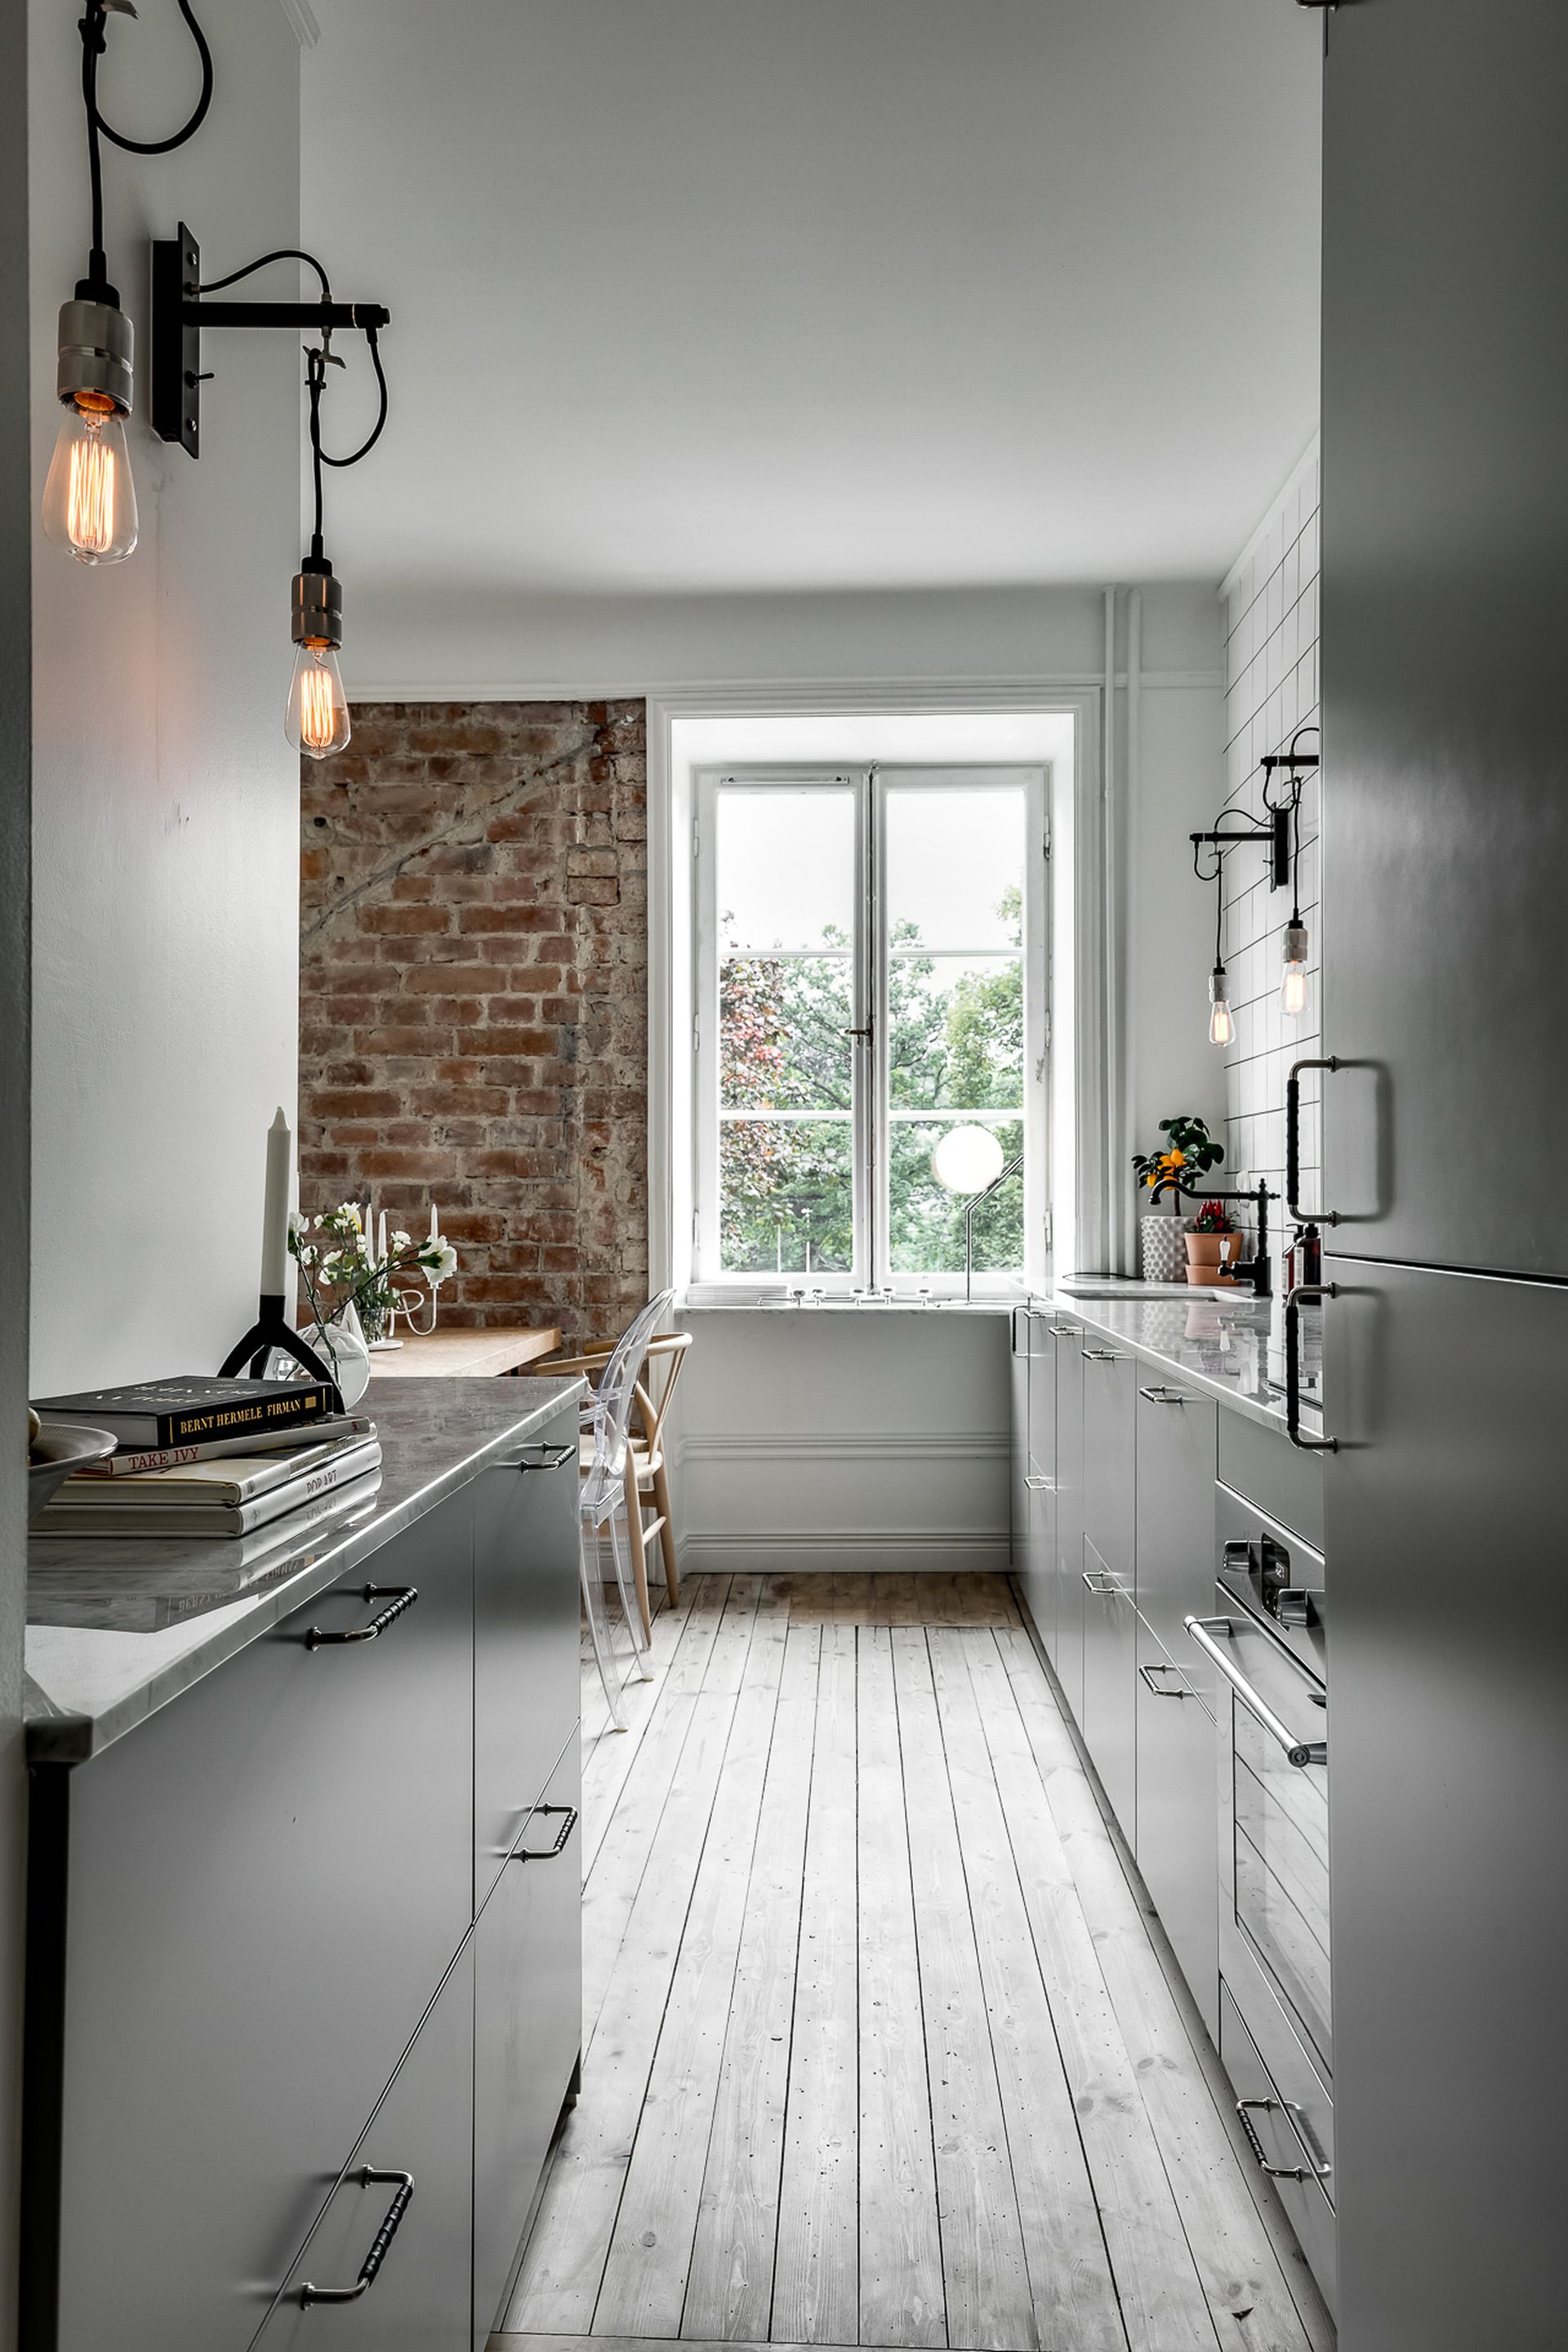 Minimal Kitchen With An Industrial Touch   Via Coco Lapine Design Blog